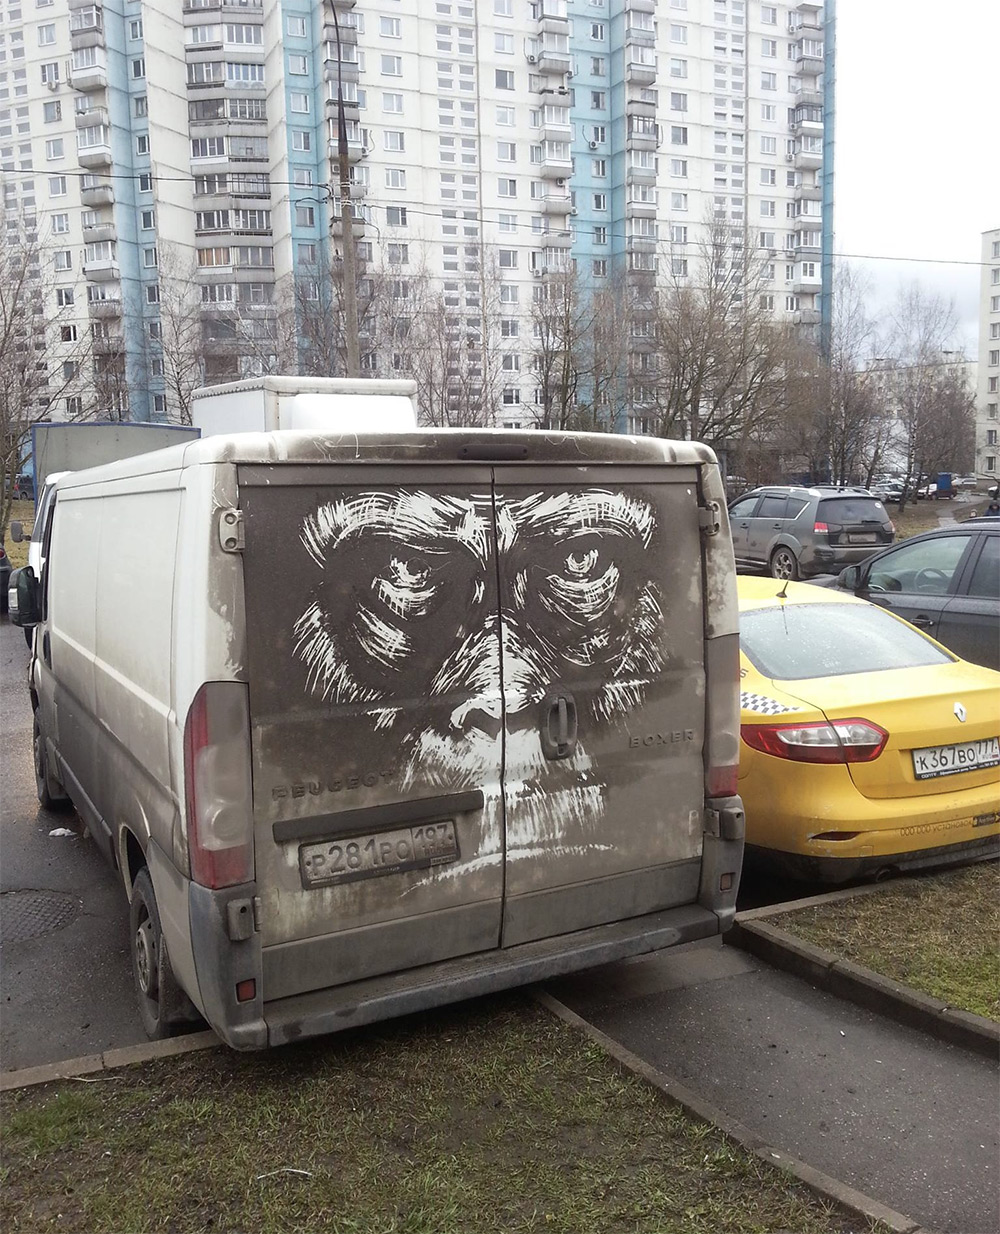 Artist Nikita Golubev Draws Animals On Dirty Cars